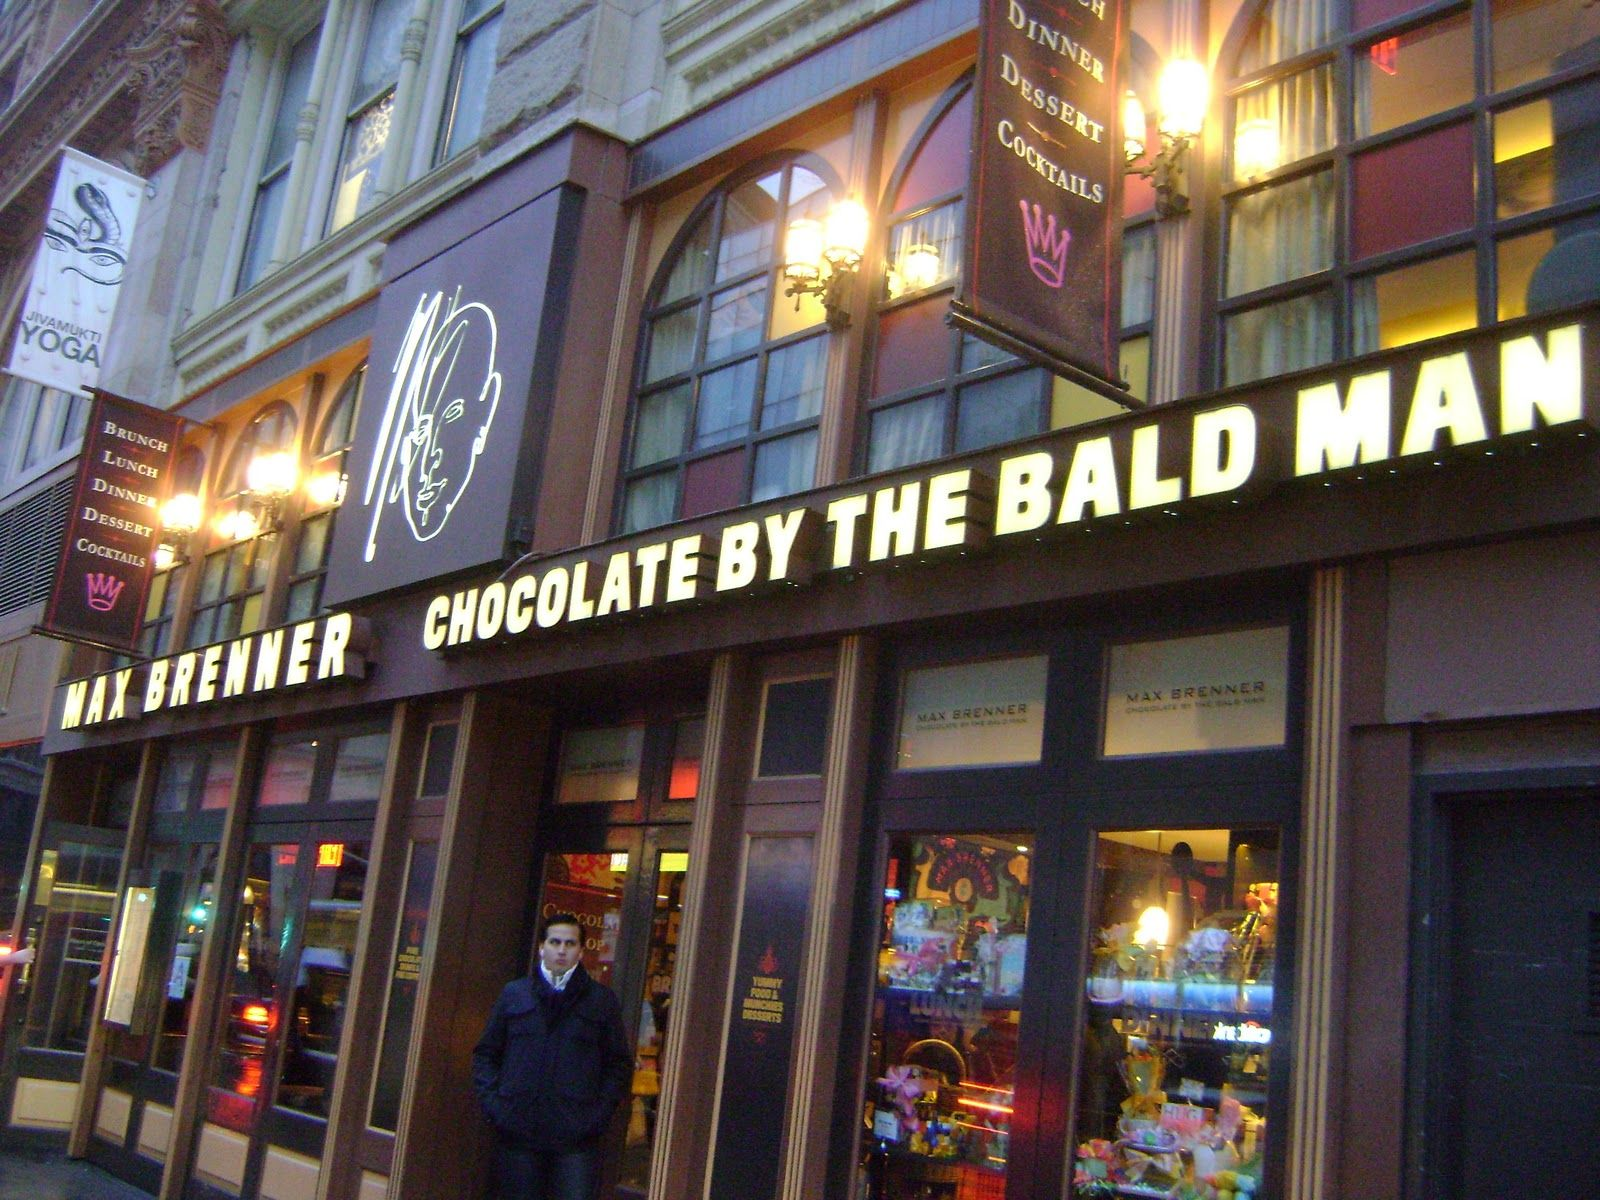 Chocolate by The Bald Man! I can't wait to go to this chocolate ...